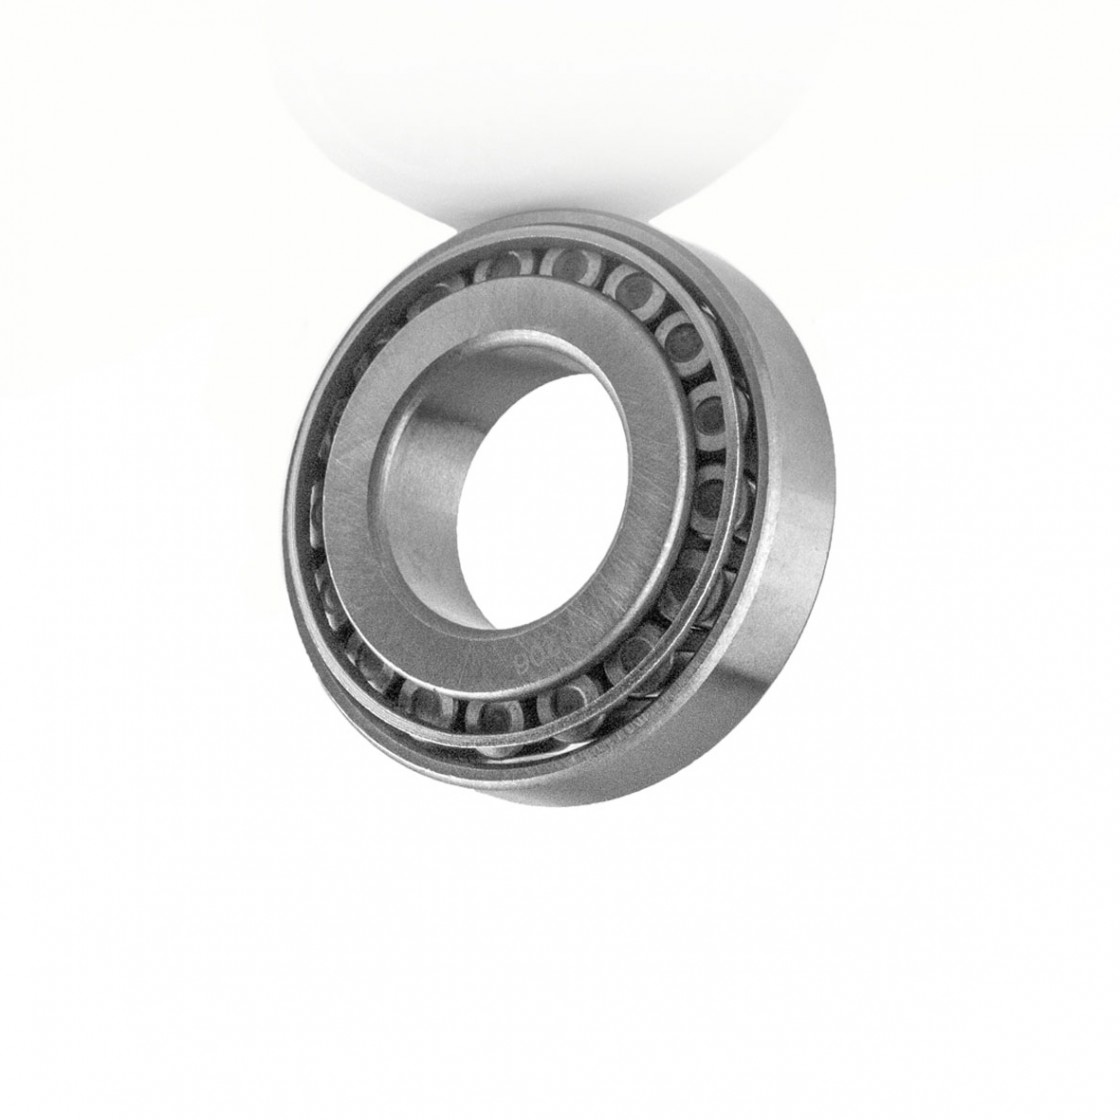 Timken SKF Bearing, NSK NTN Koyo Bearing NACHI Auto Wheel Bearing Tapered Roller Bearings ...